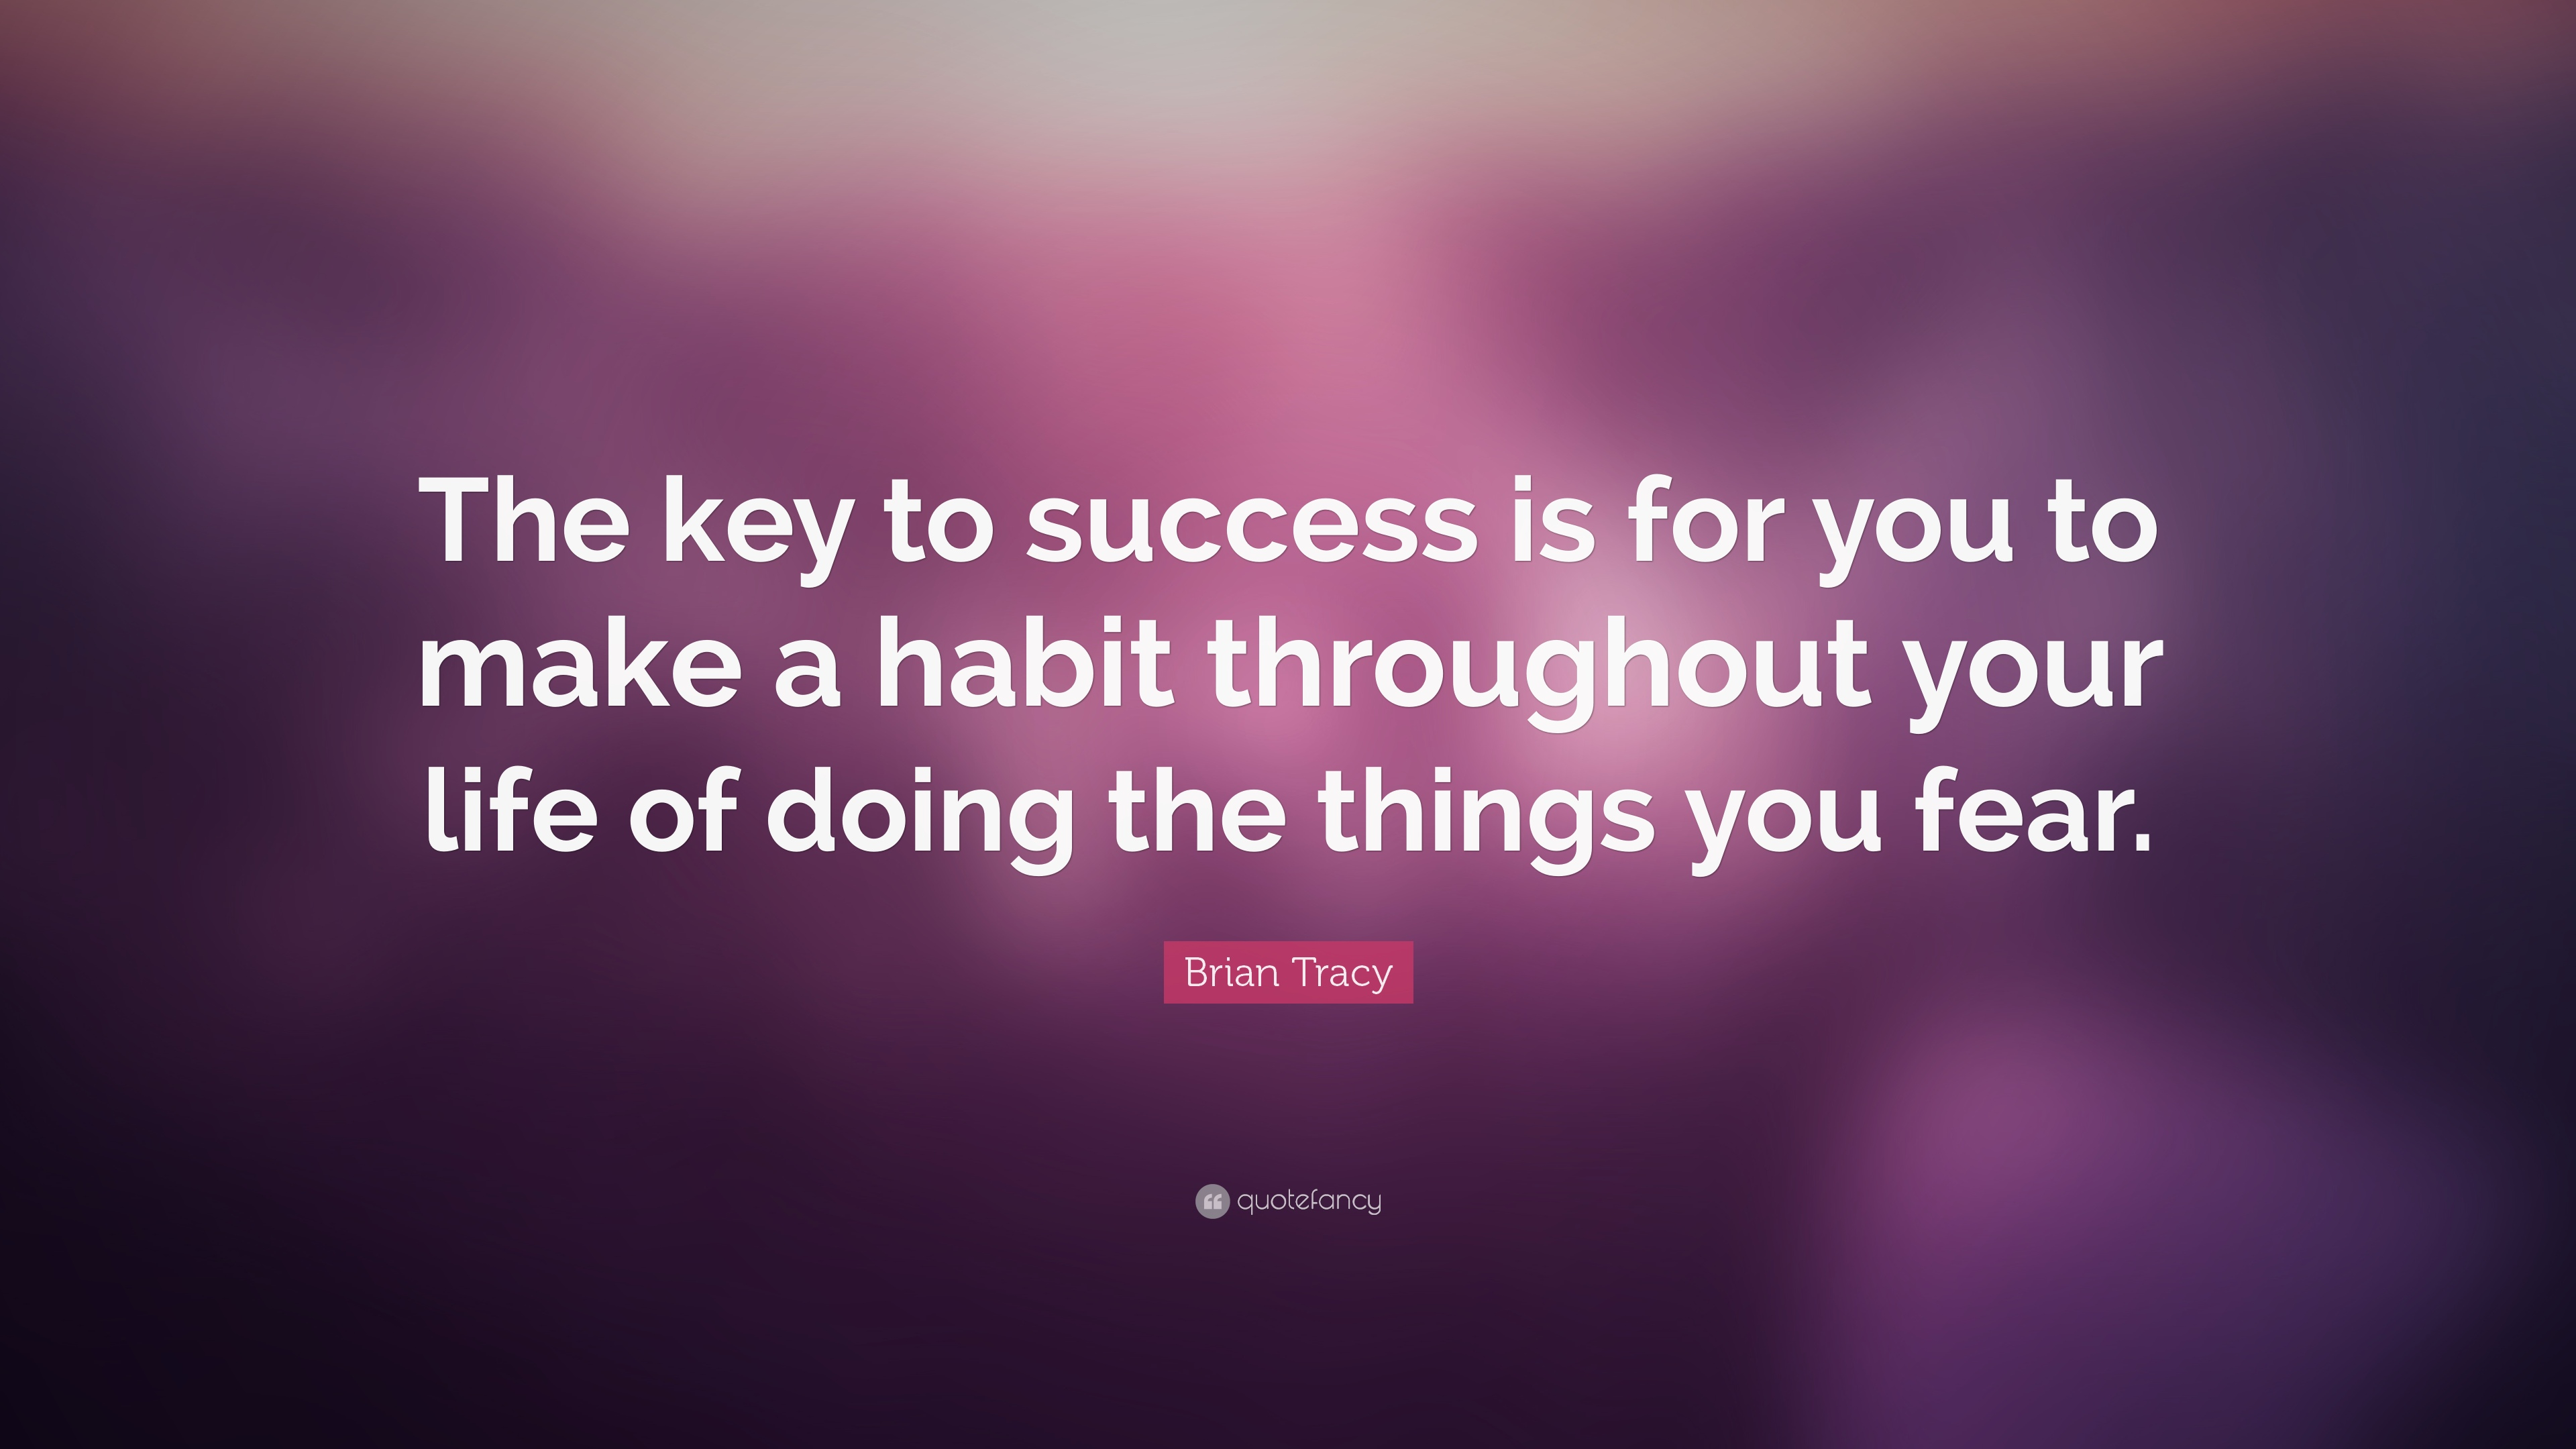 brian tracy quote the key to success is for you to make a habit brian tracy quote the key to success is for you to make a habit